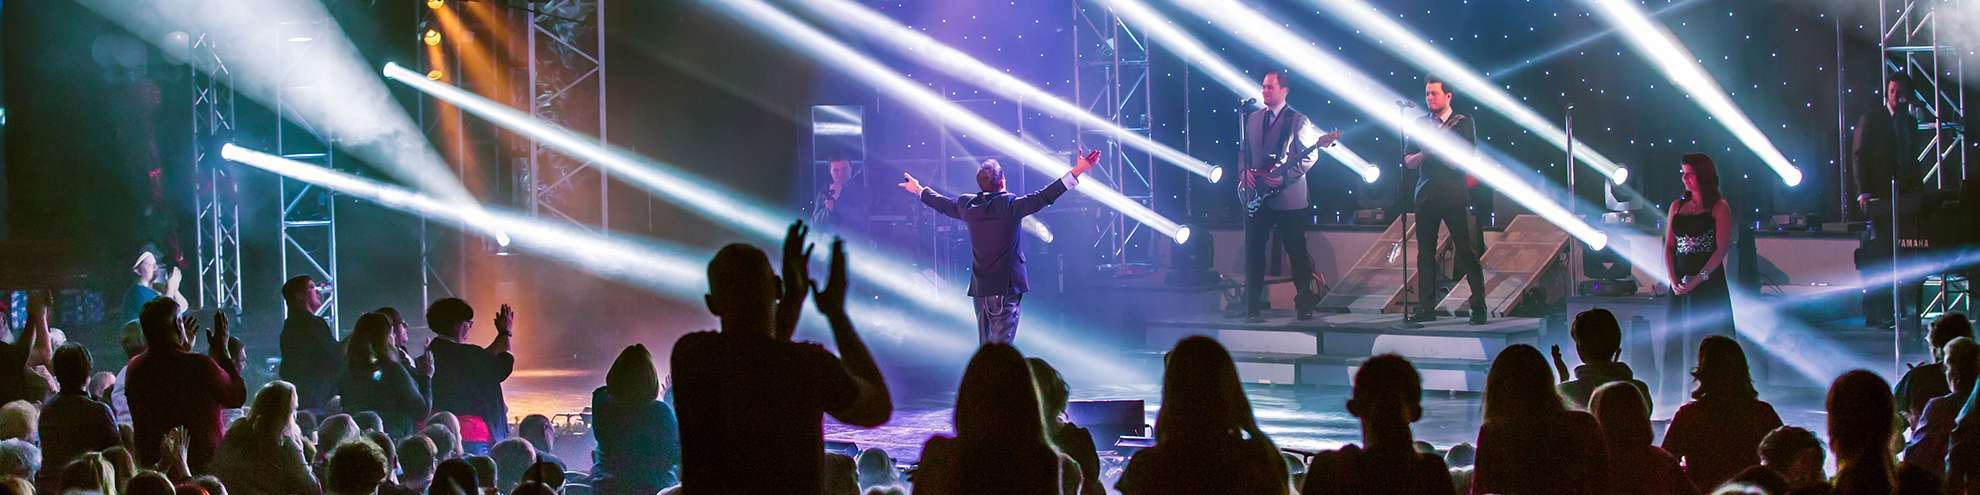 Discount Tickets for Shows in Branson